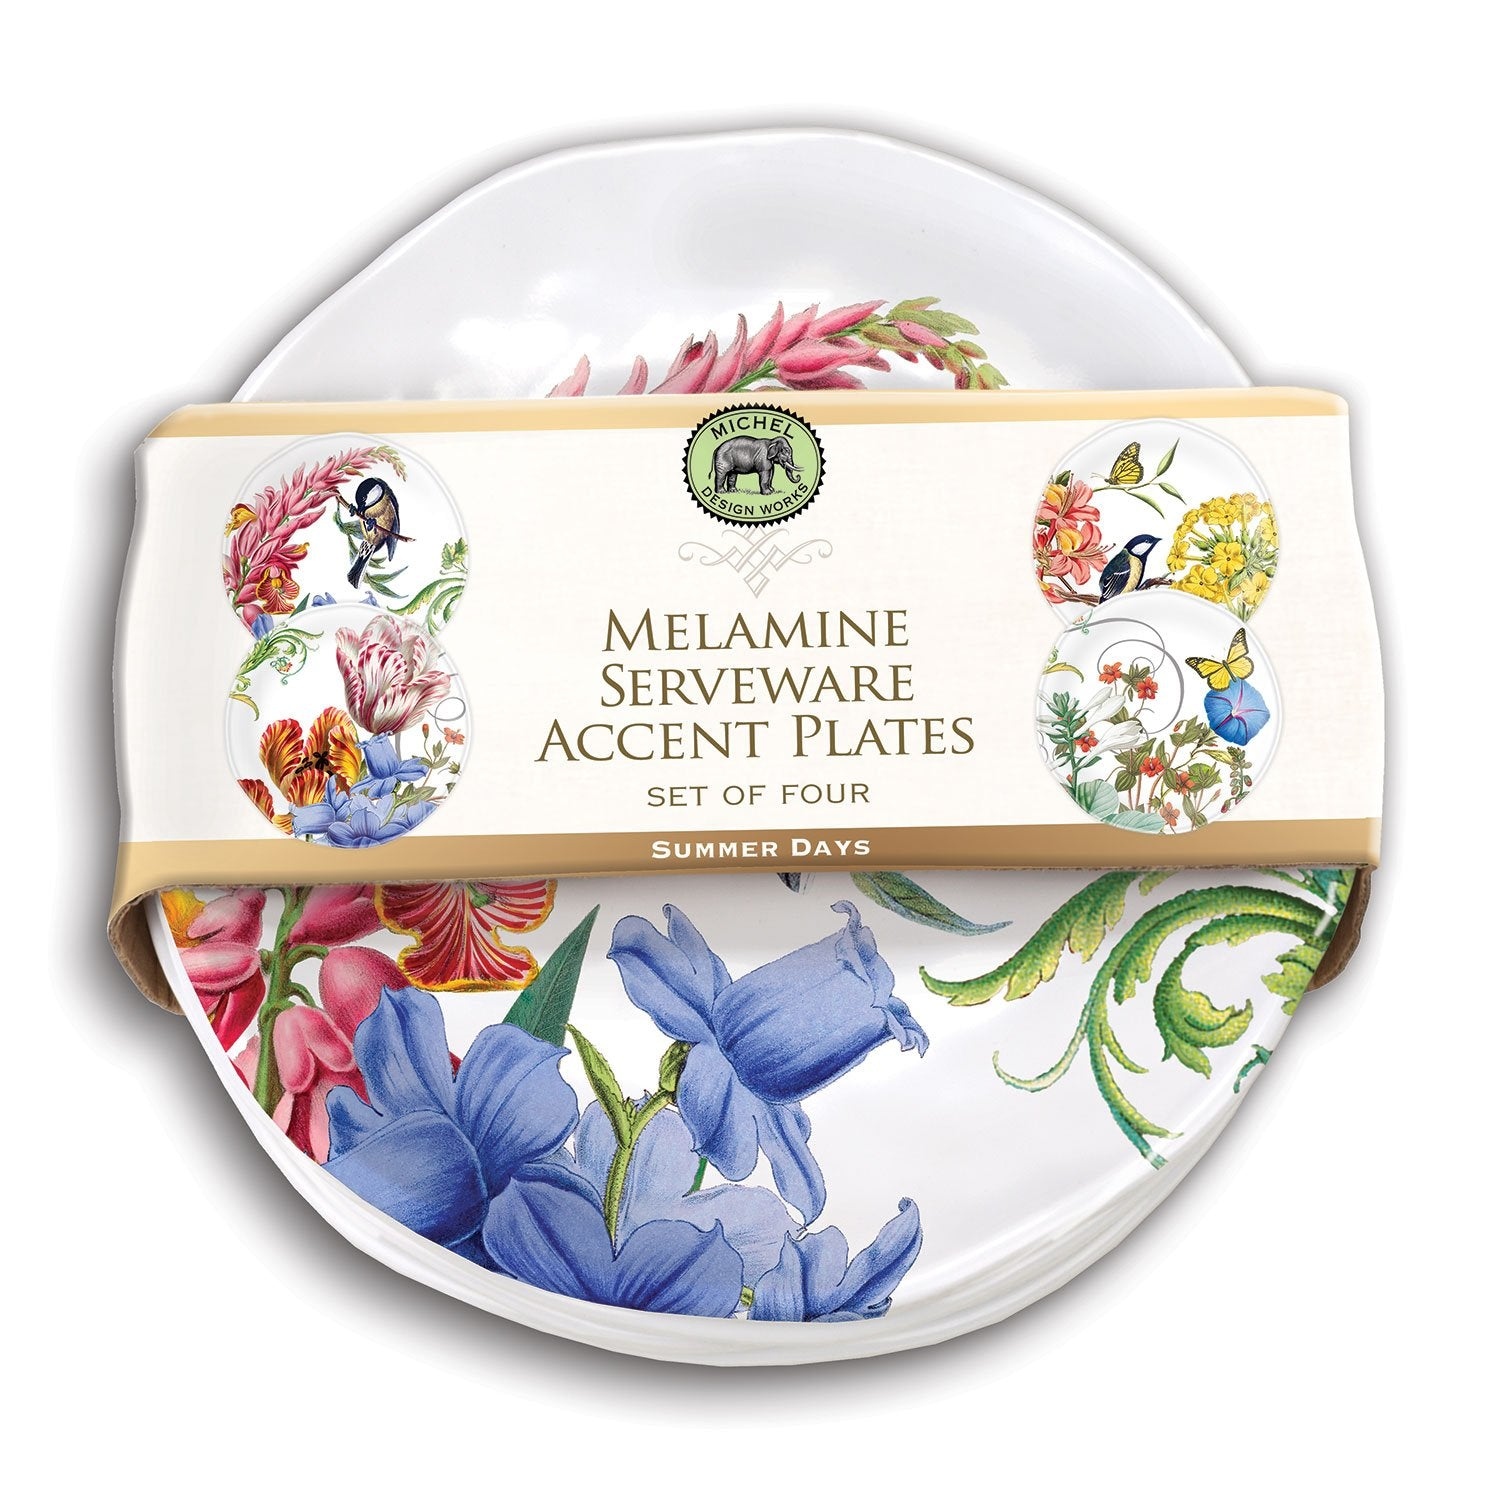 Summer Days Melamine Serveware Accent Plate Set